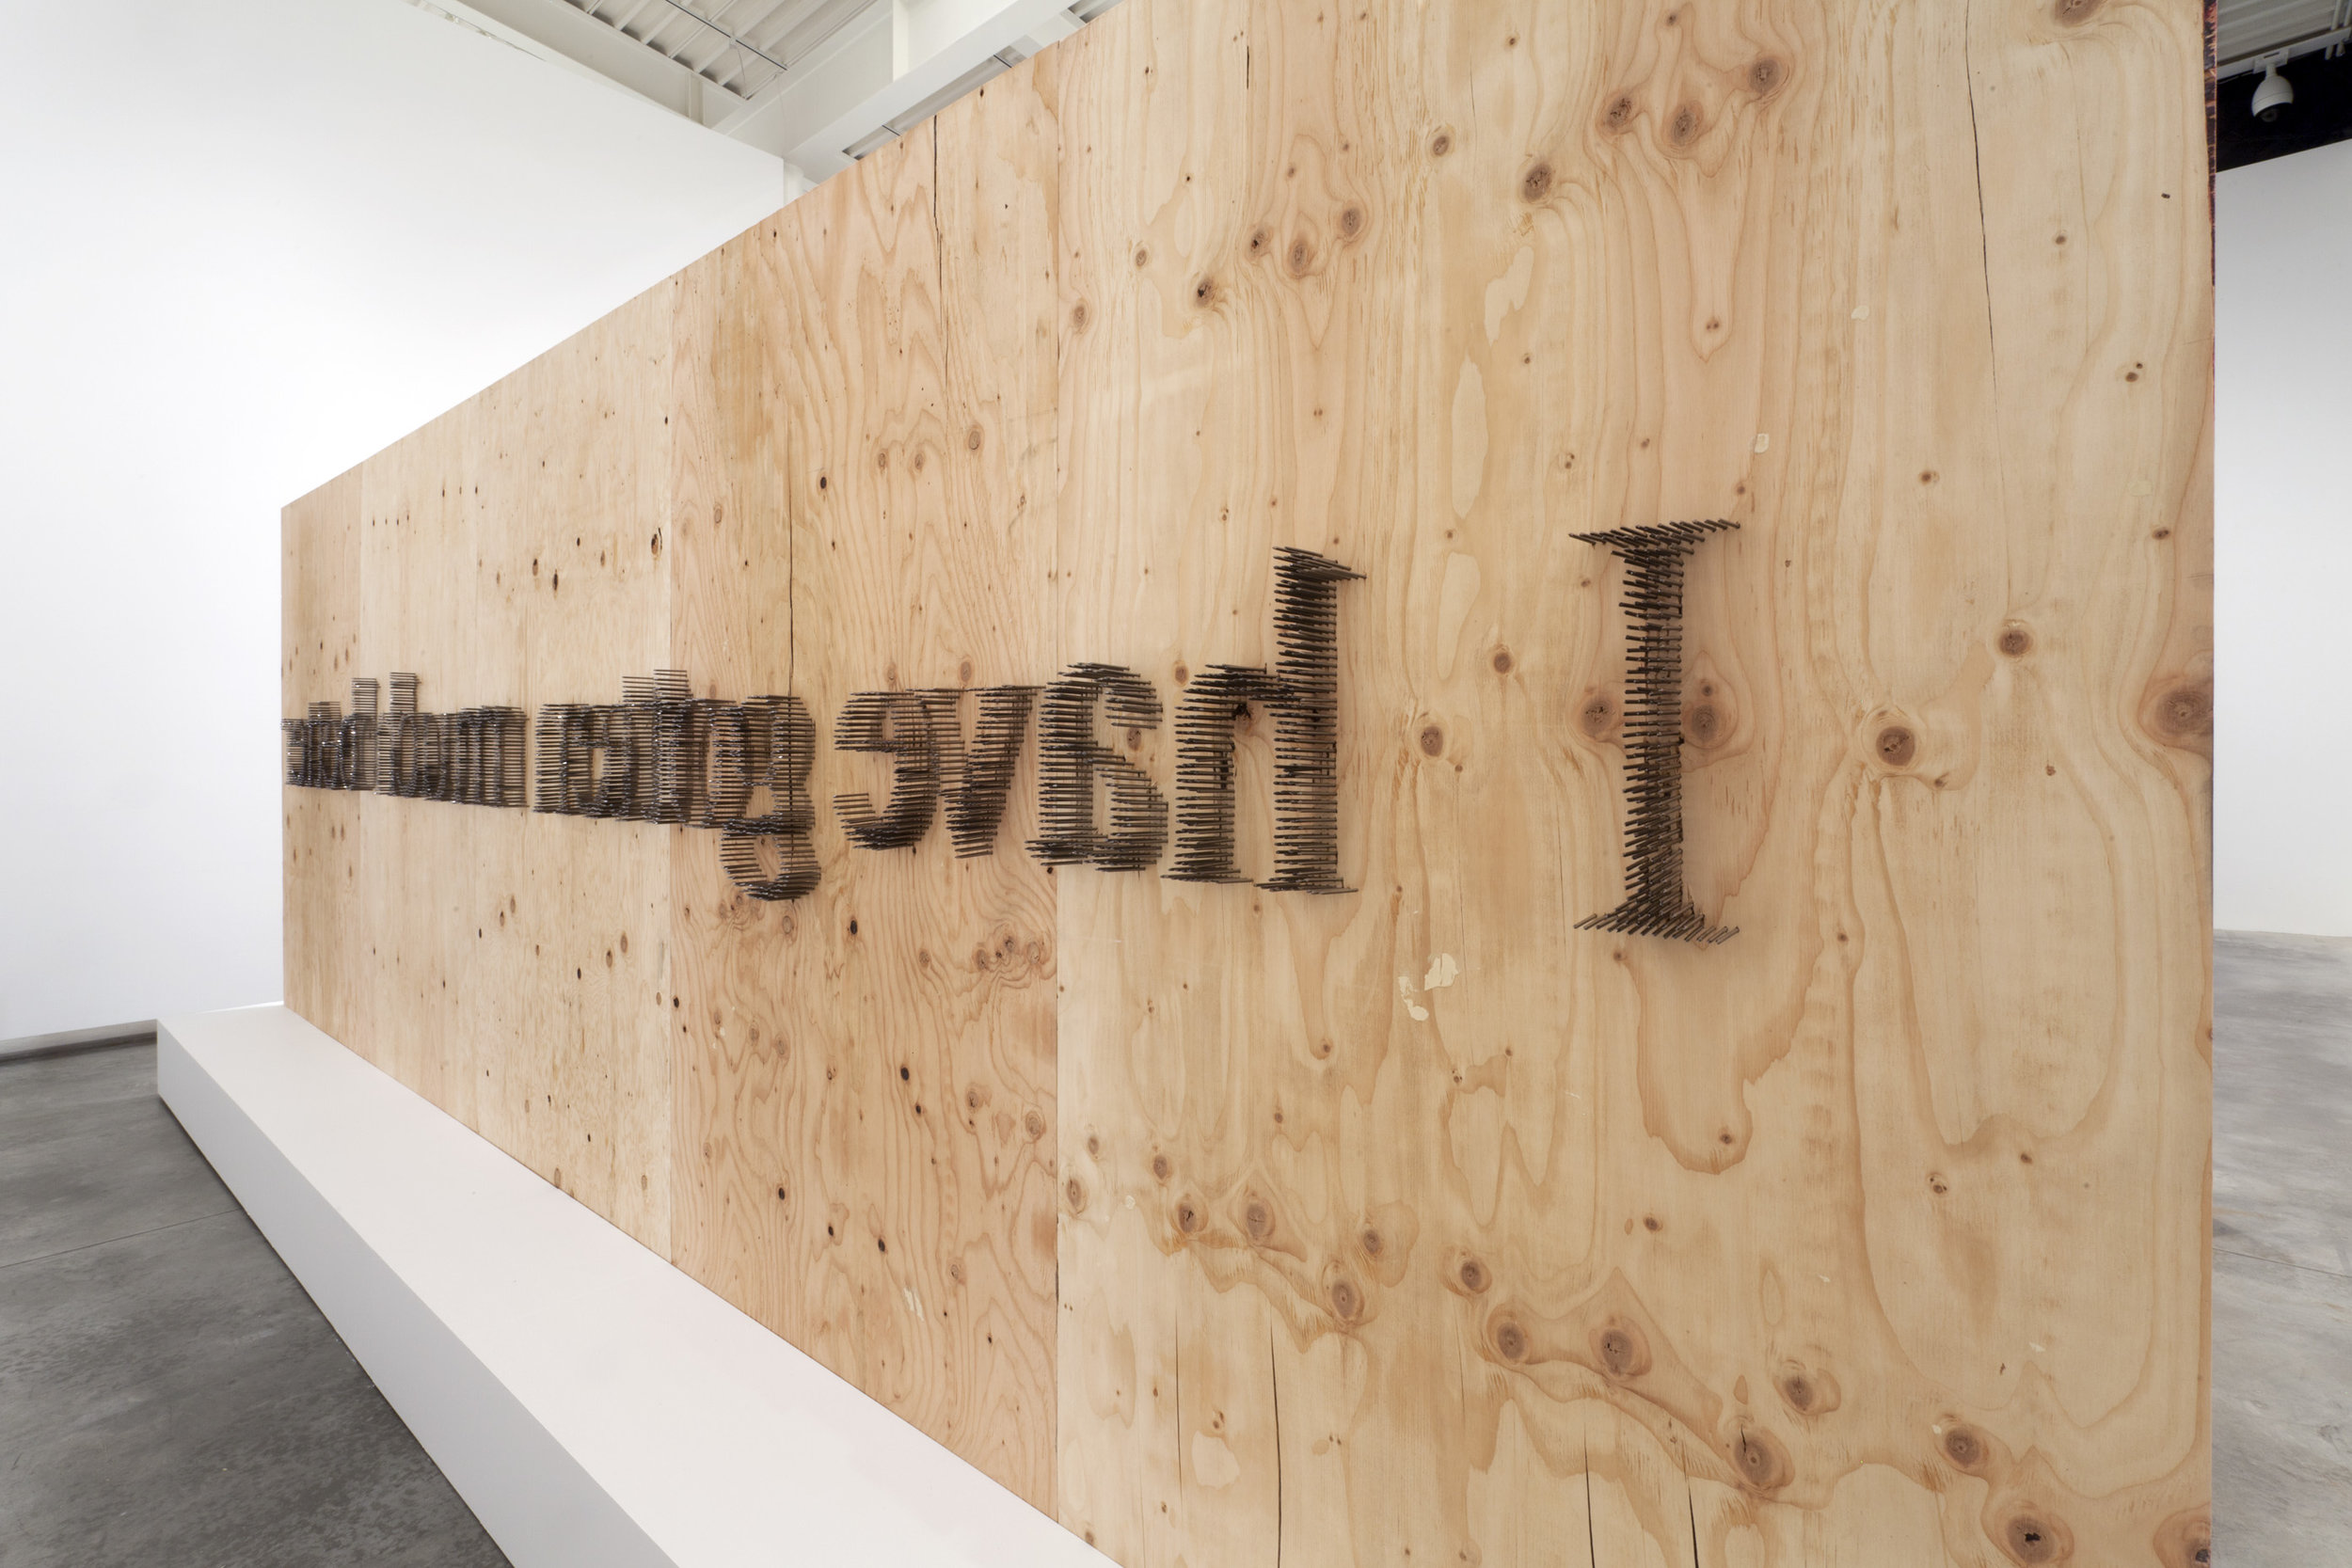 Plywood, Construction Nails, Plaster Plinth, White Paint, Silicon Dioxide Microchip. 700 x 300 x 150 Cm